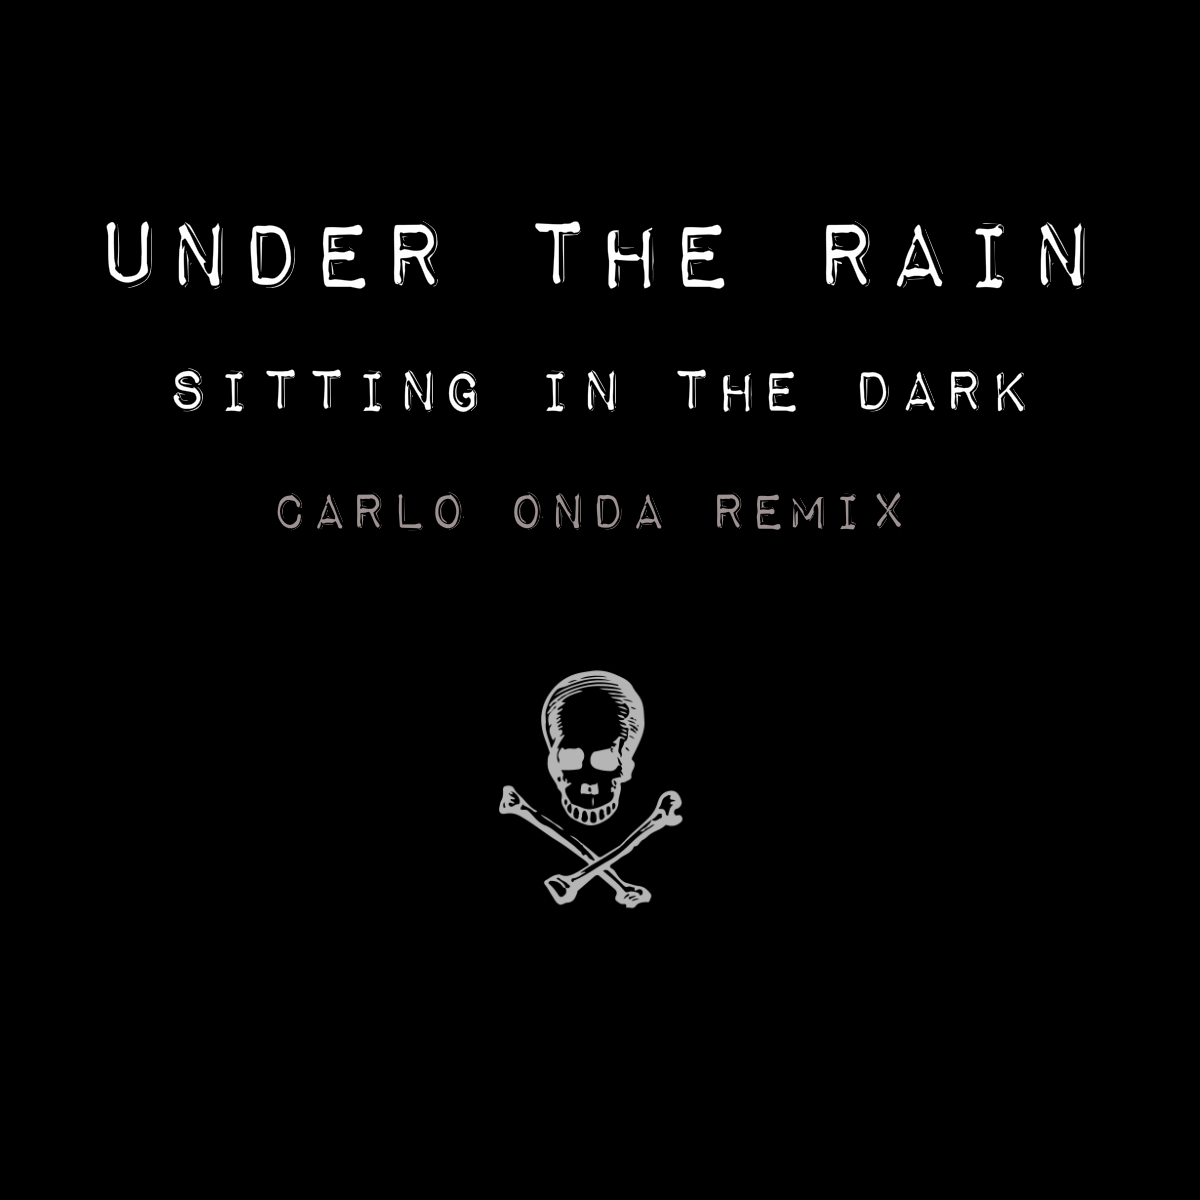 Under the Rain - Sitting in the Dark (Carlo Onda Remix)